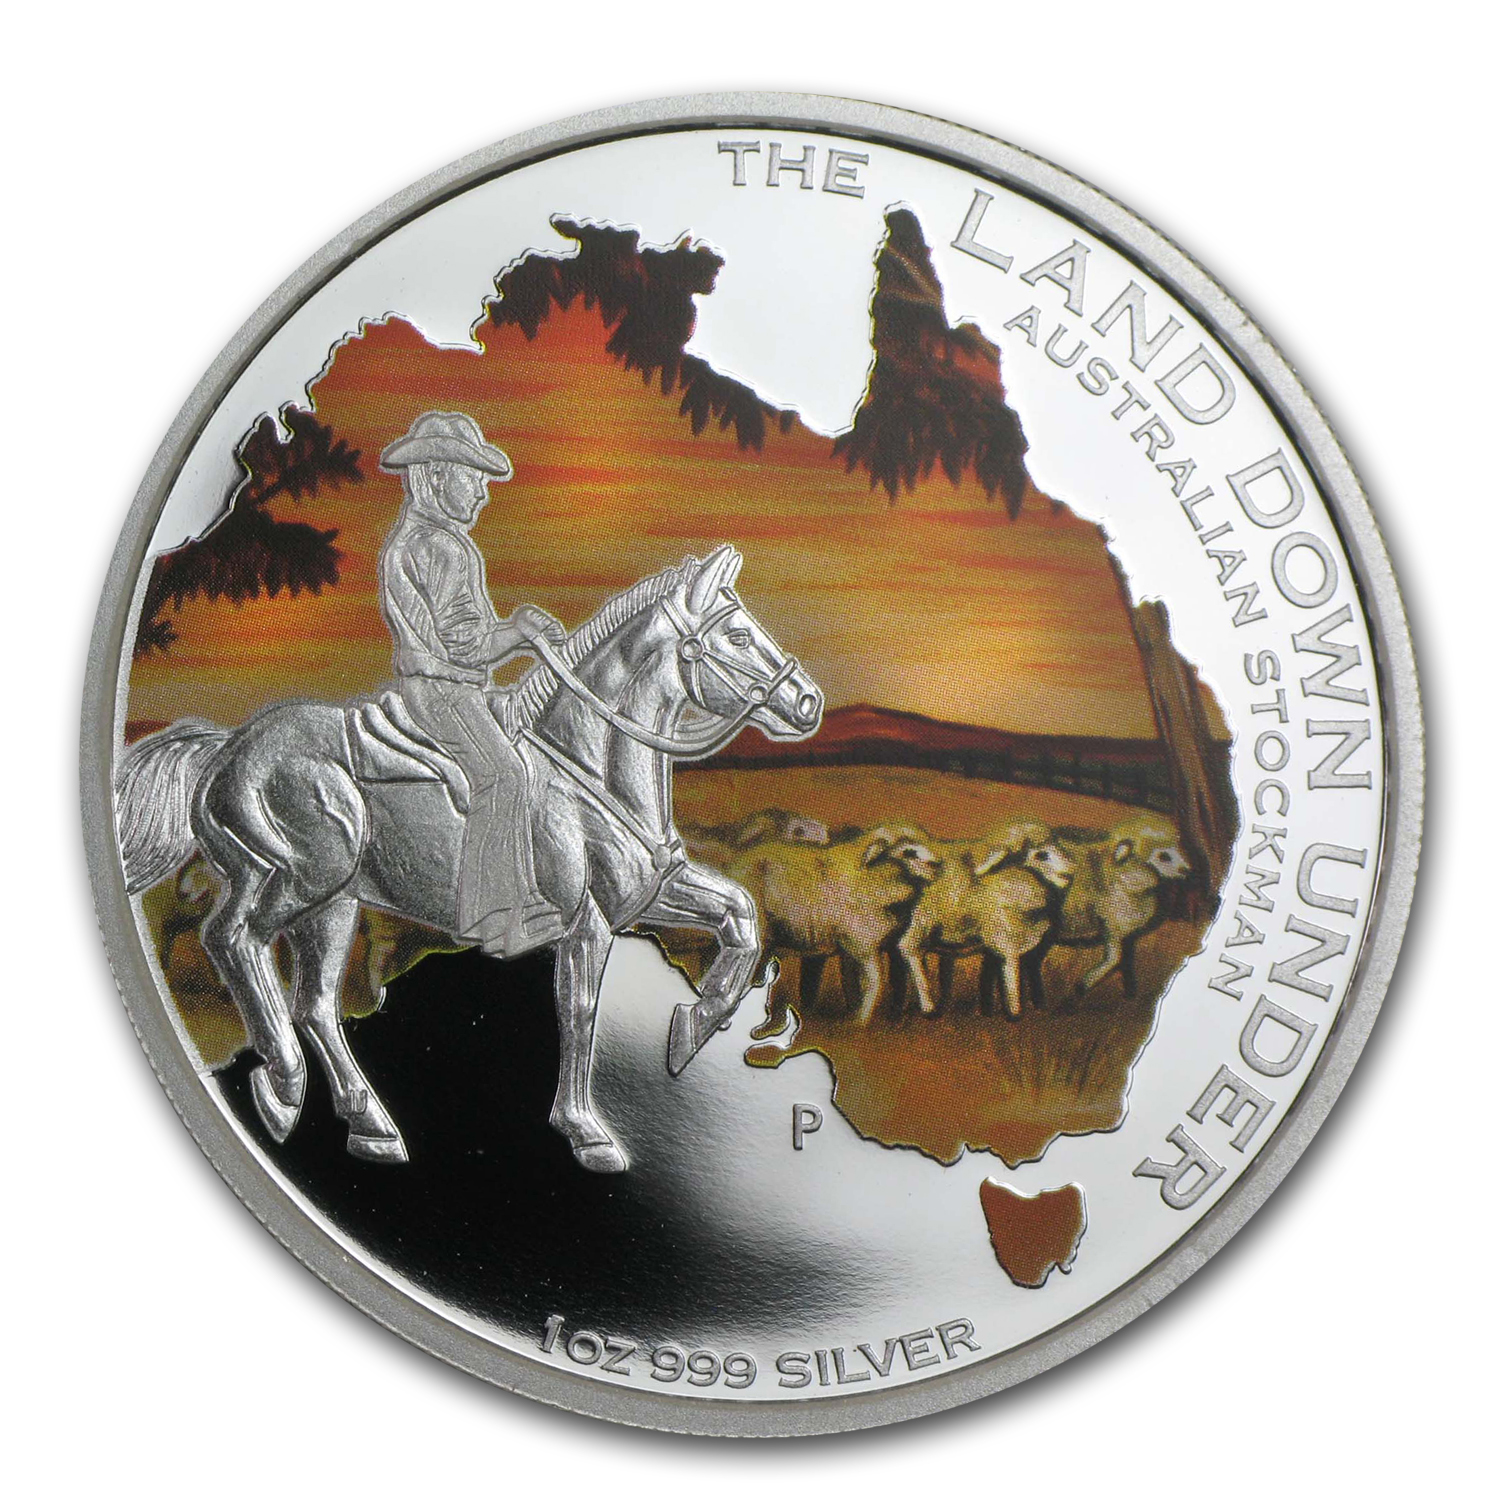 2014 1 oz Silver The Land Down Under Australian Stockman Proof